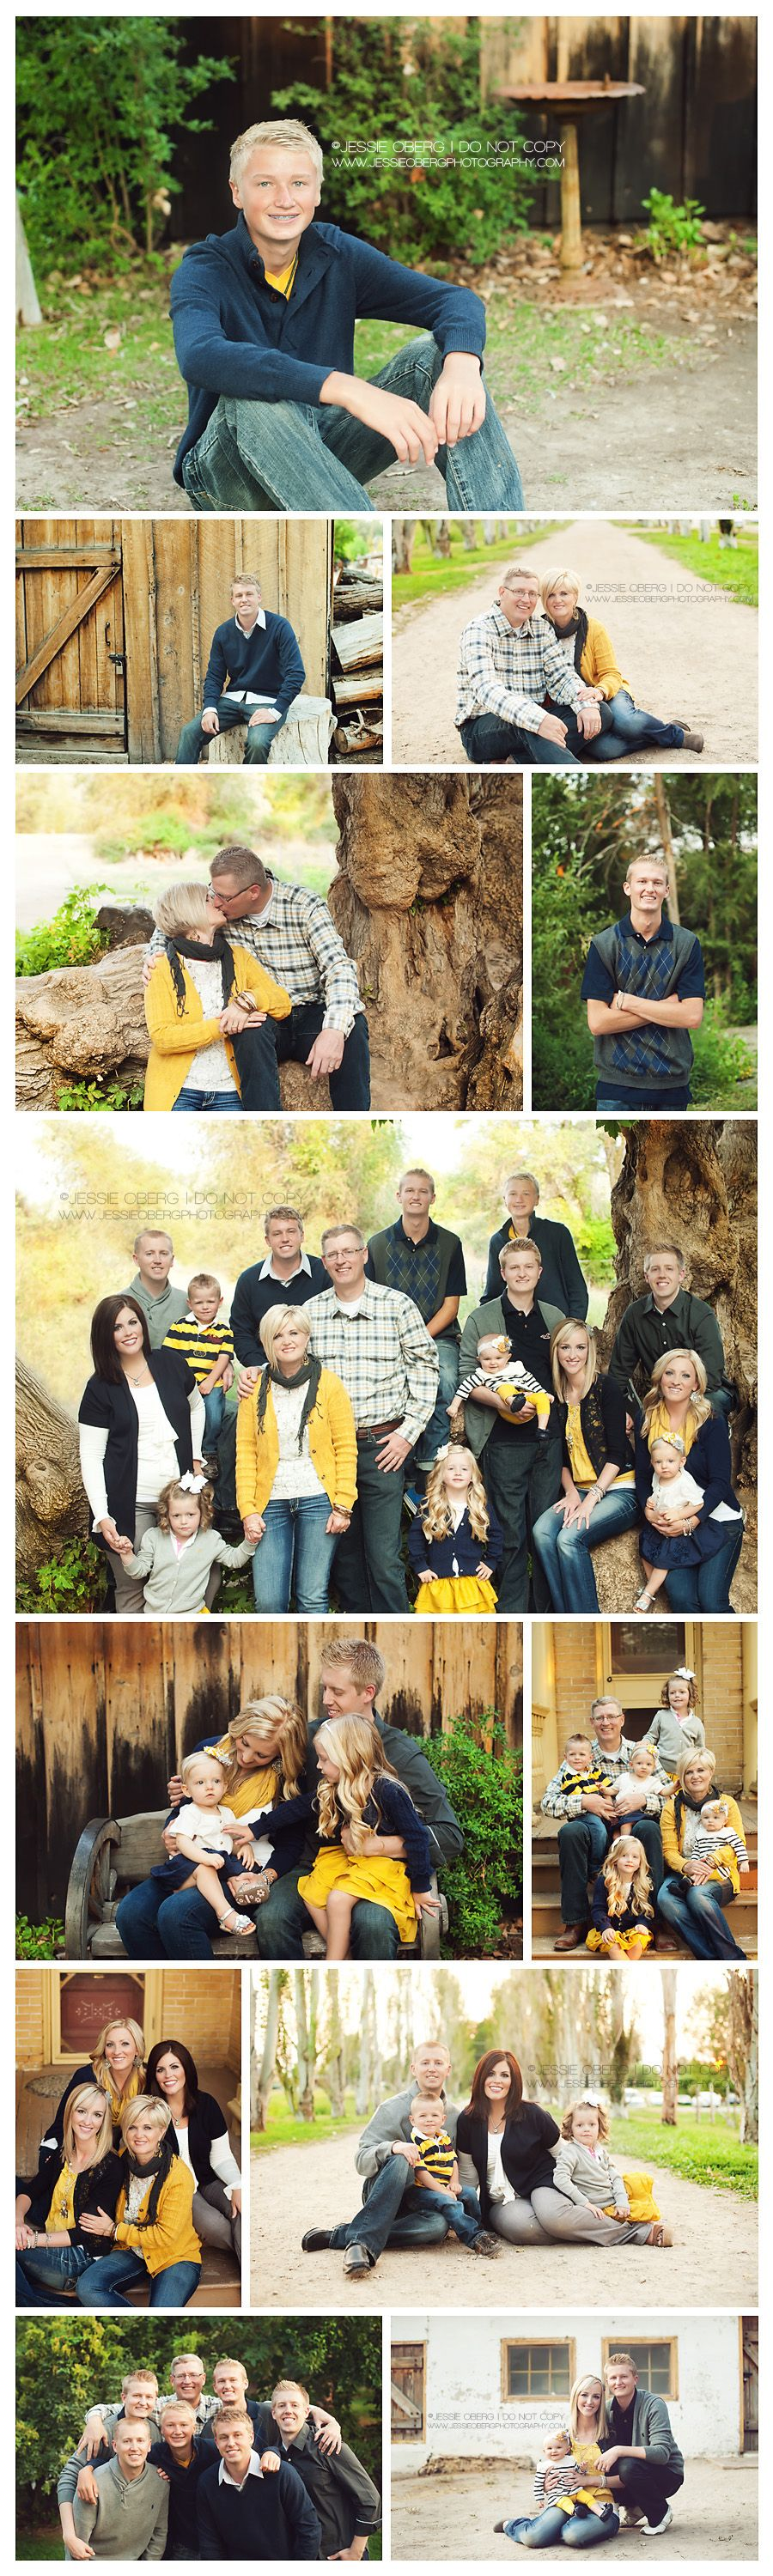 example of color pop in group photos...a great alternative to white t's and jeans or khakis worn with navy shirts. #extendedfamilyphotography